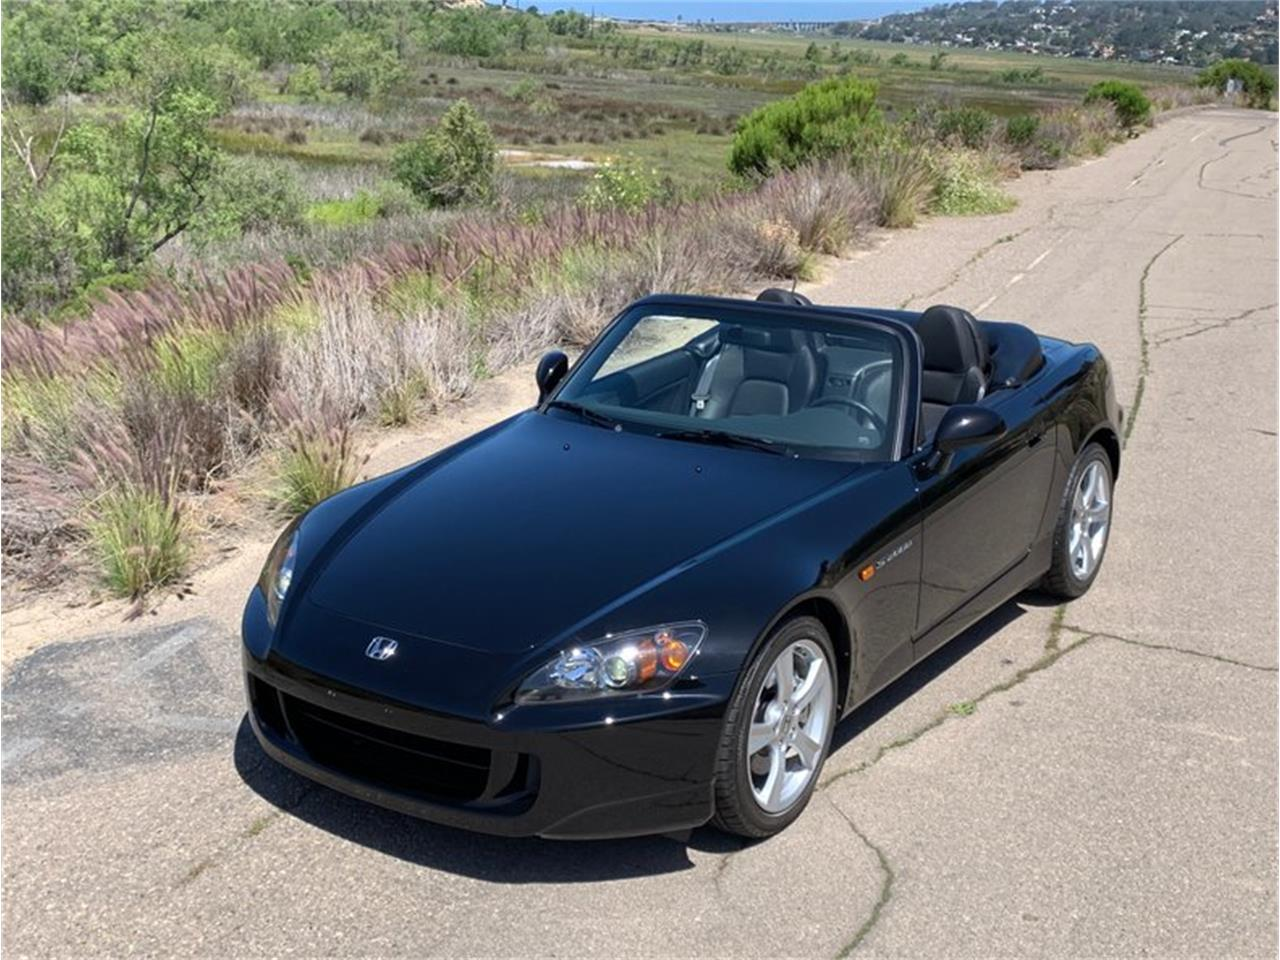 2009 Honda S2000 for sale in San Diego, CA – photo 45